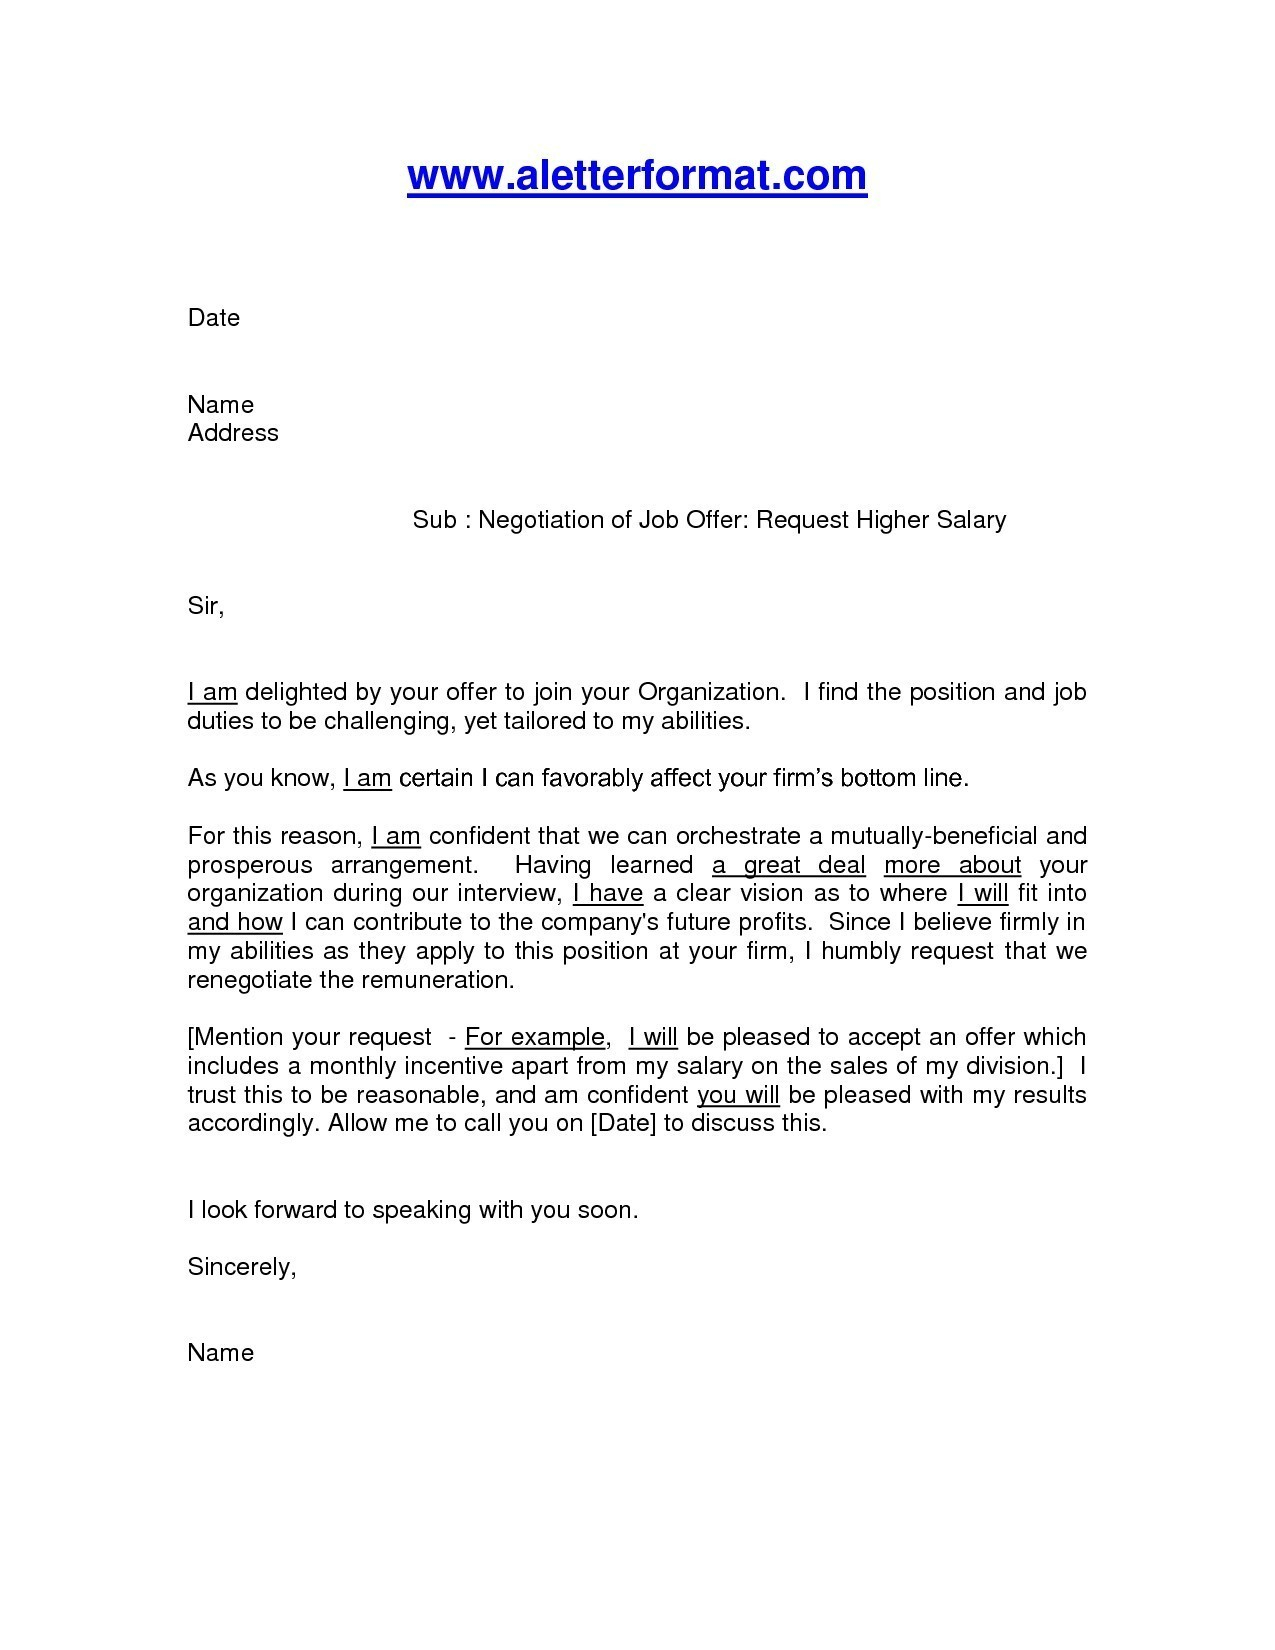 Contract Negotiation Letter Template - Job Fer Pay Negotiation Letter Archives Vichi Co Valid Job